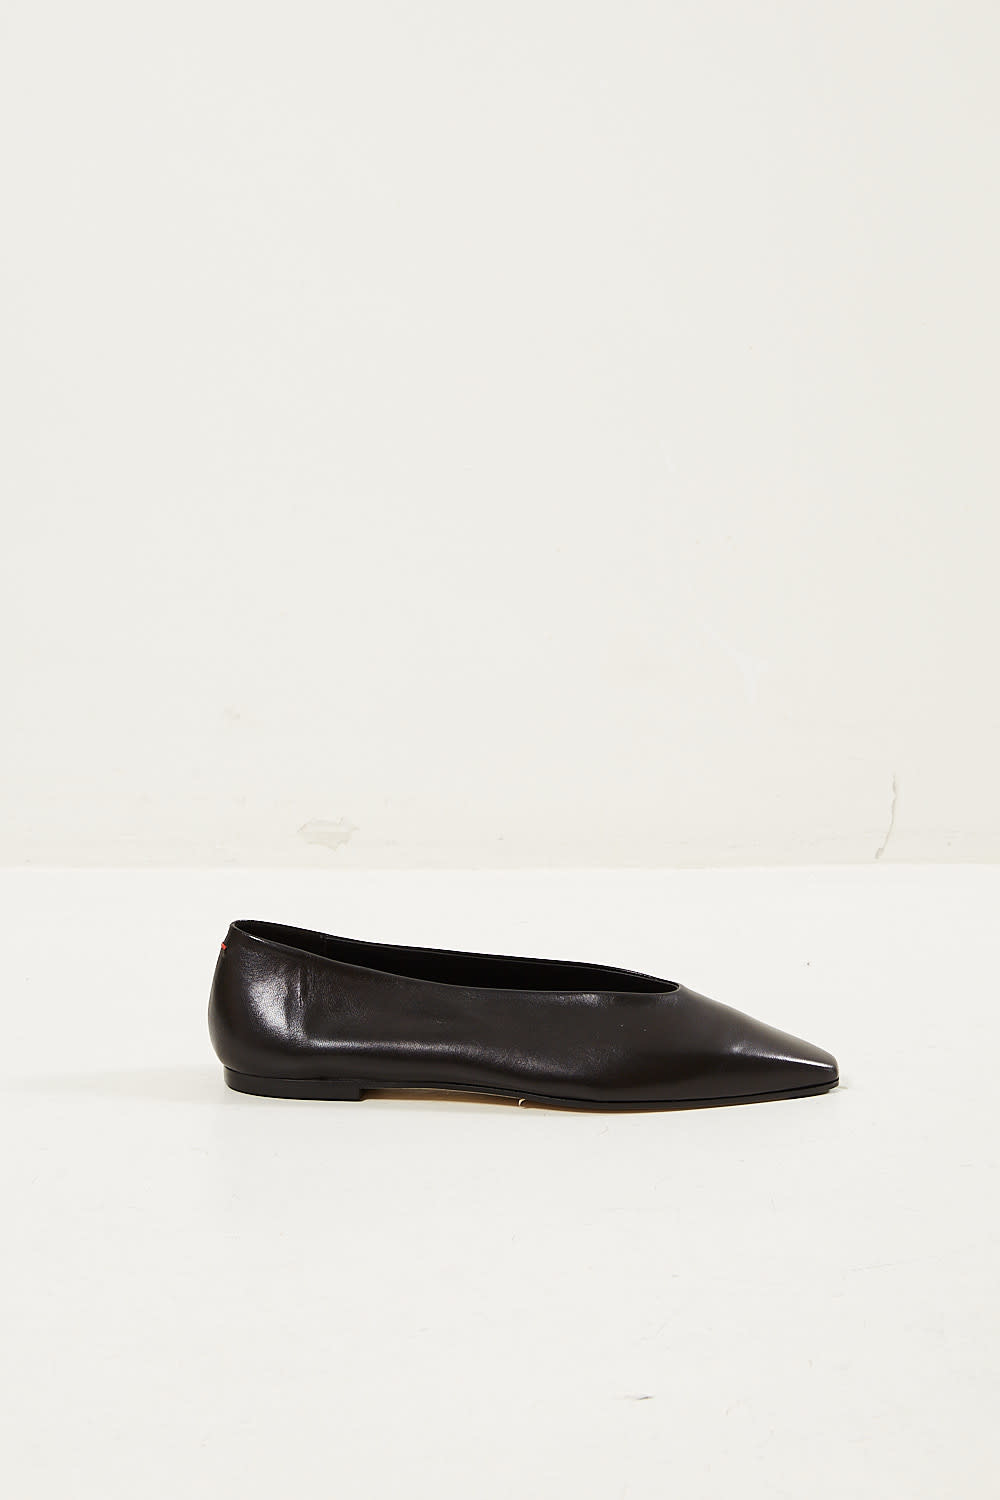 Aeyde - Betty nappa leather flats